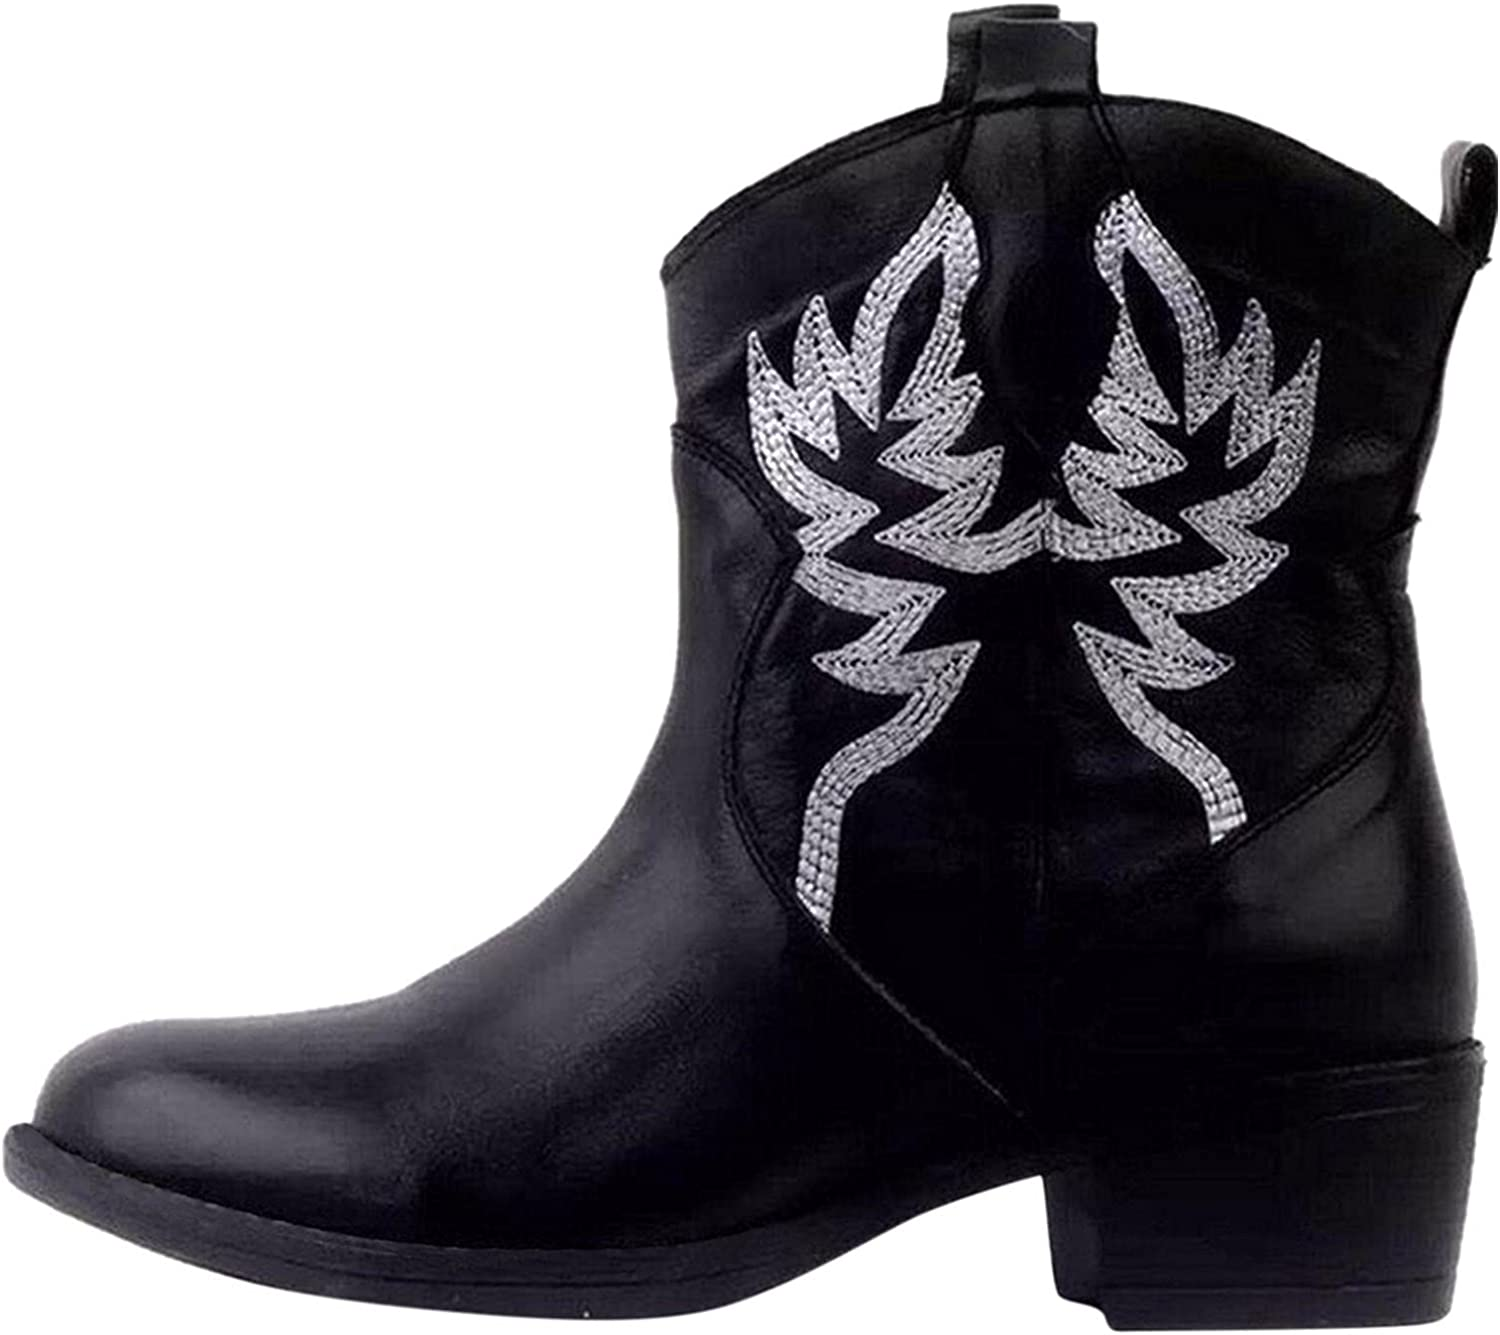 Boots New color For Women Vintage Pattern Rider Motorcycle Gorgeous Mid-Tube